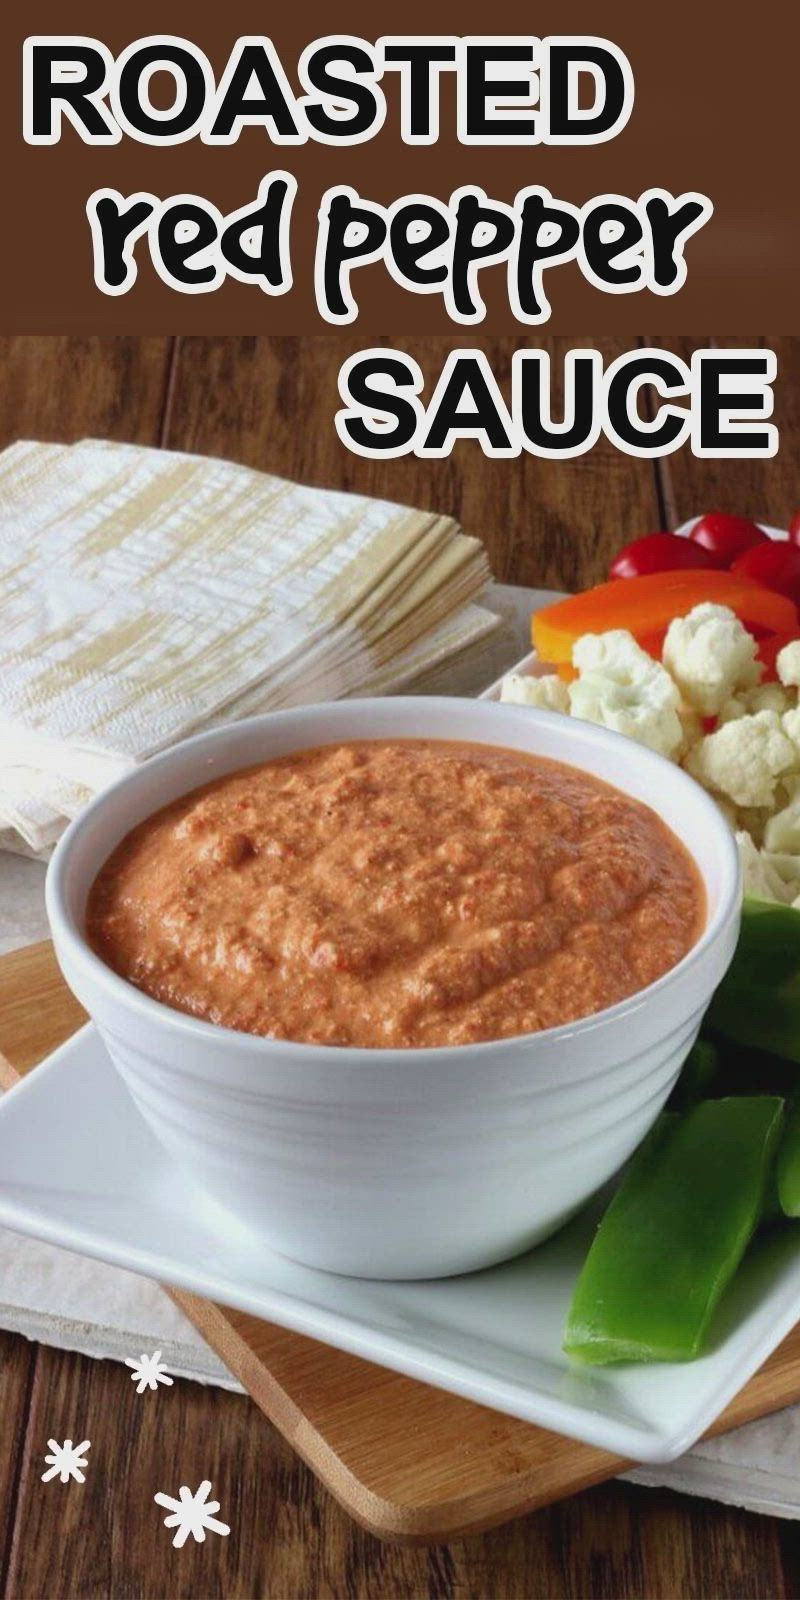 Roasted Red Pepper Sauce Dip Video In 2021 Vegan Recipes Healthy Appetizers Recipes Roasted Red Pepper Sauce [ 1600 x 800 Pixel ]